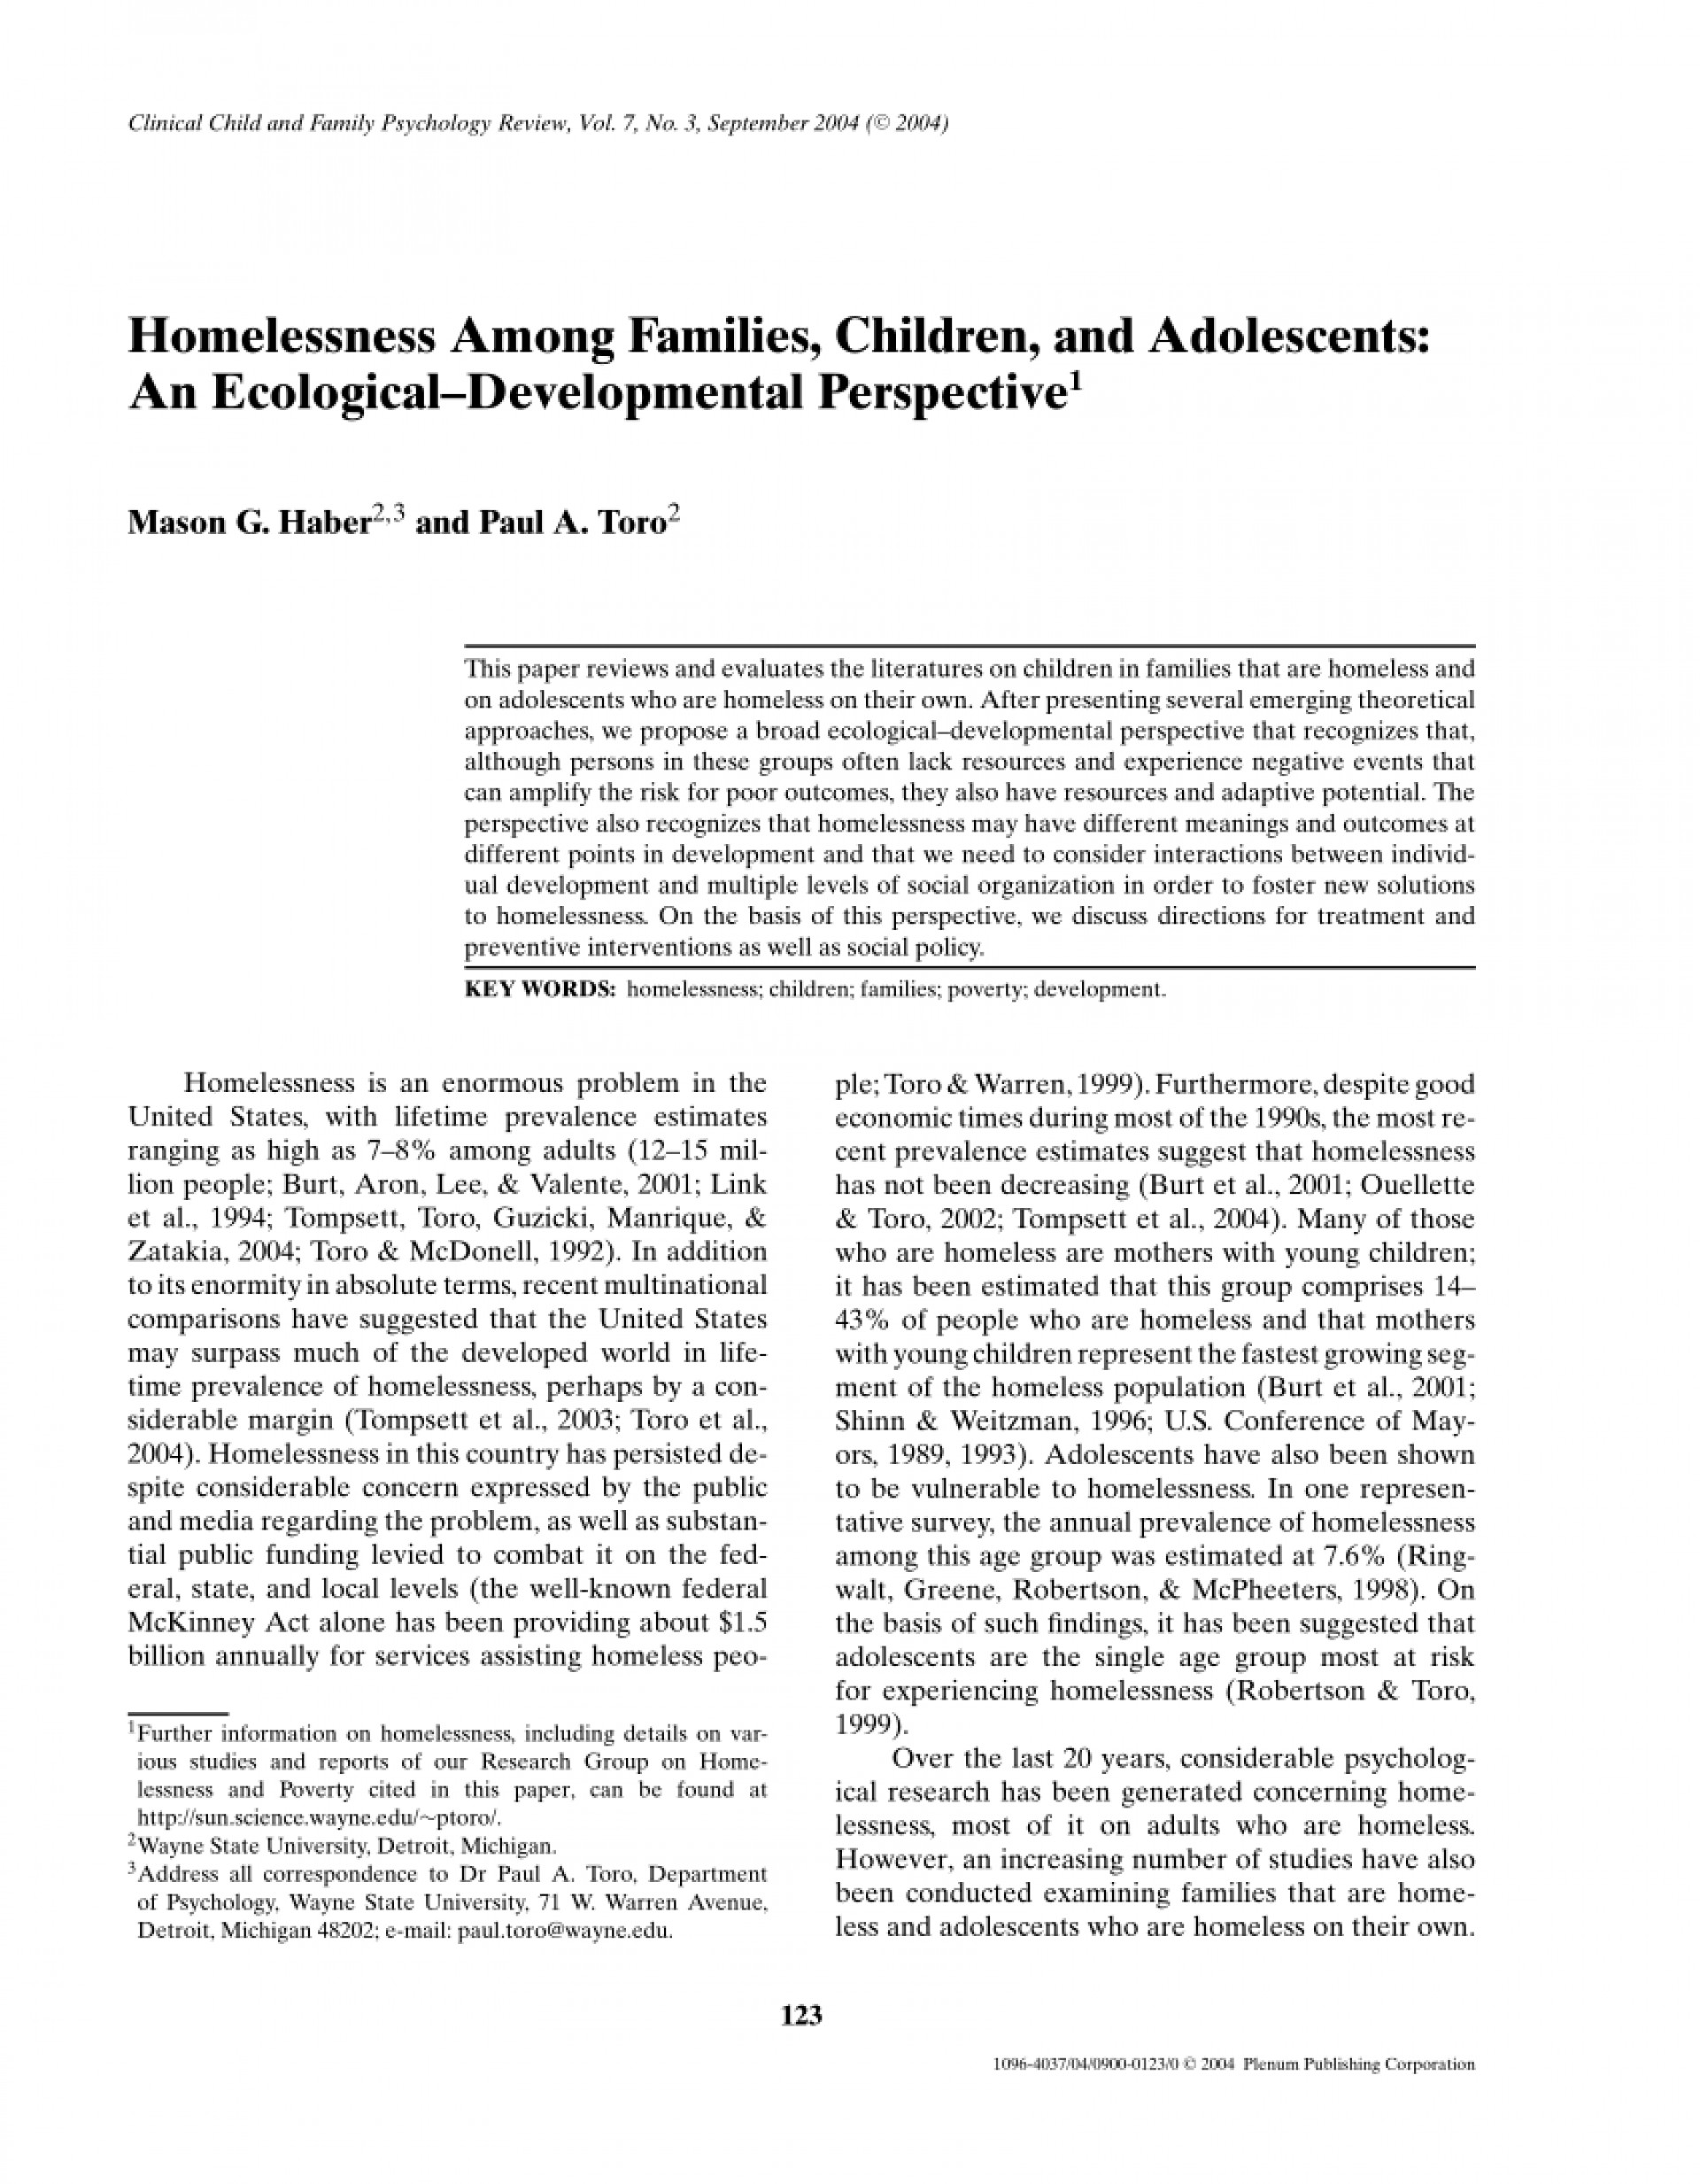 002 Research Paper On Homelessness Singular Article In The United States Sample 1920